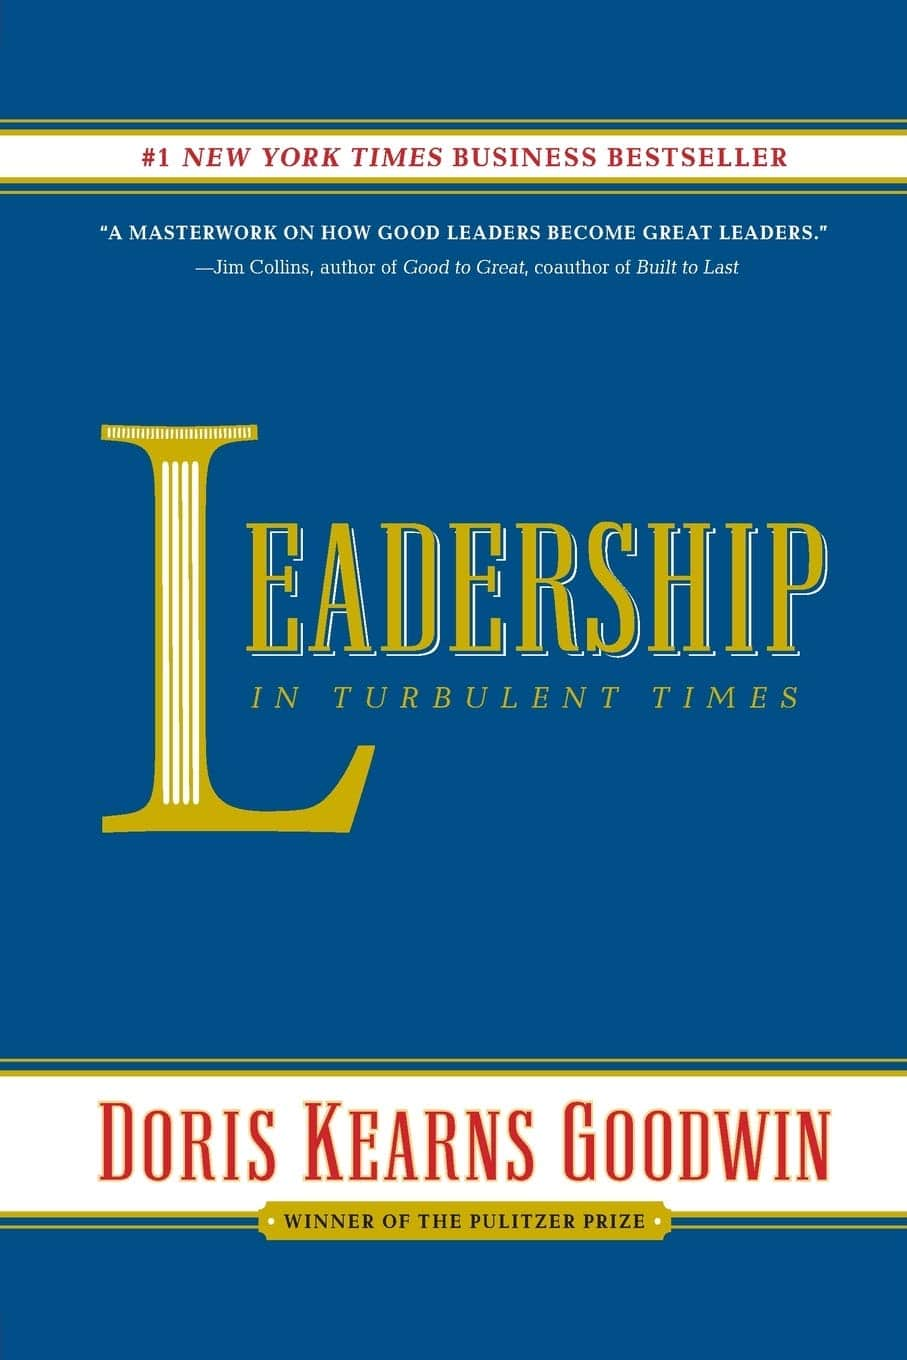 Leadership in Turbulent Times by Doris Kearns Goodwin (2019)